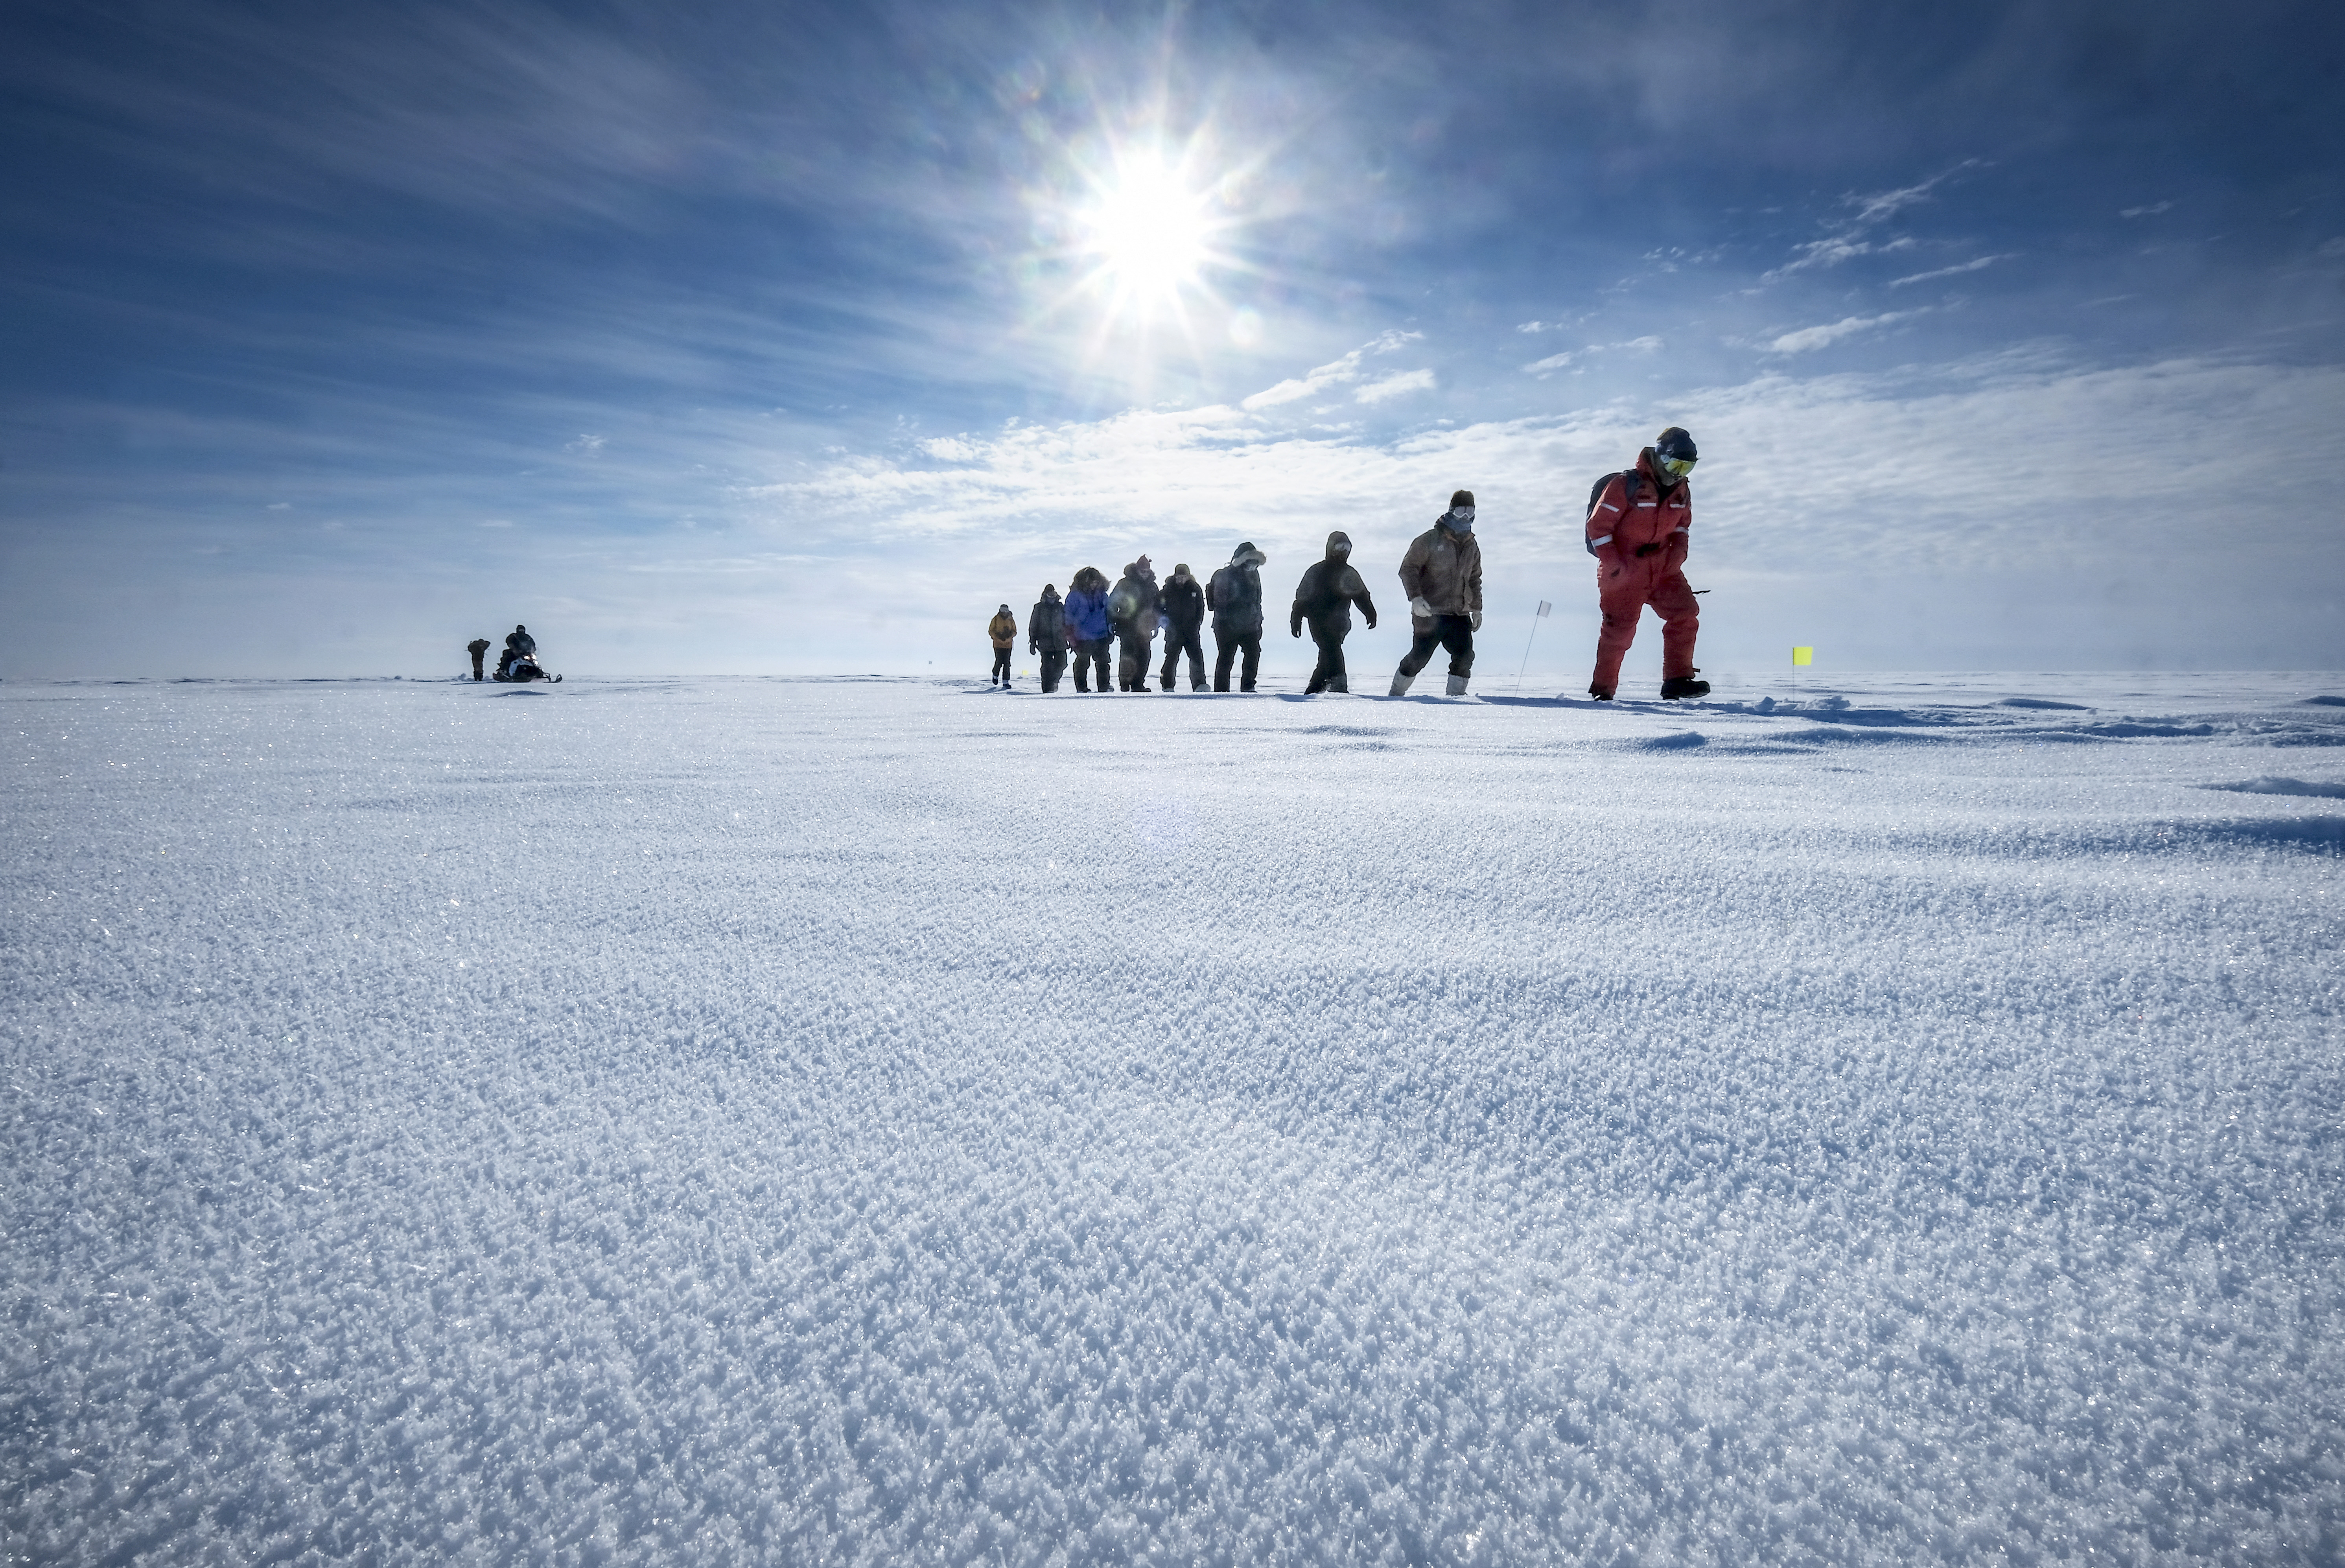 History's biggest Arctic expedition launches Sept. 20 to explore climate change